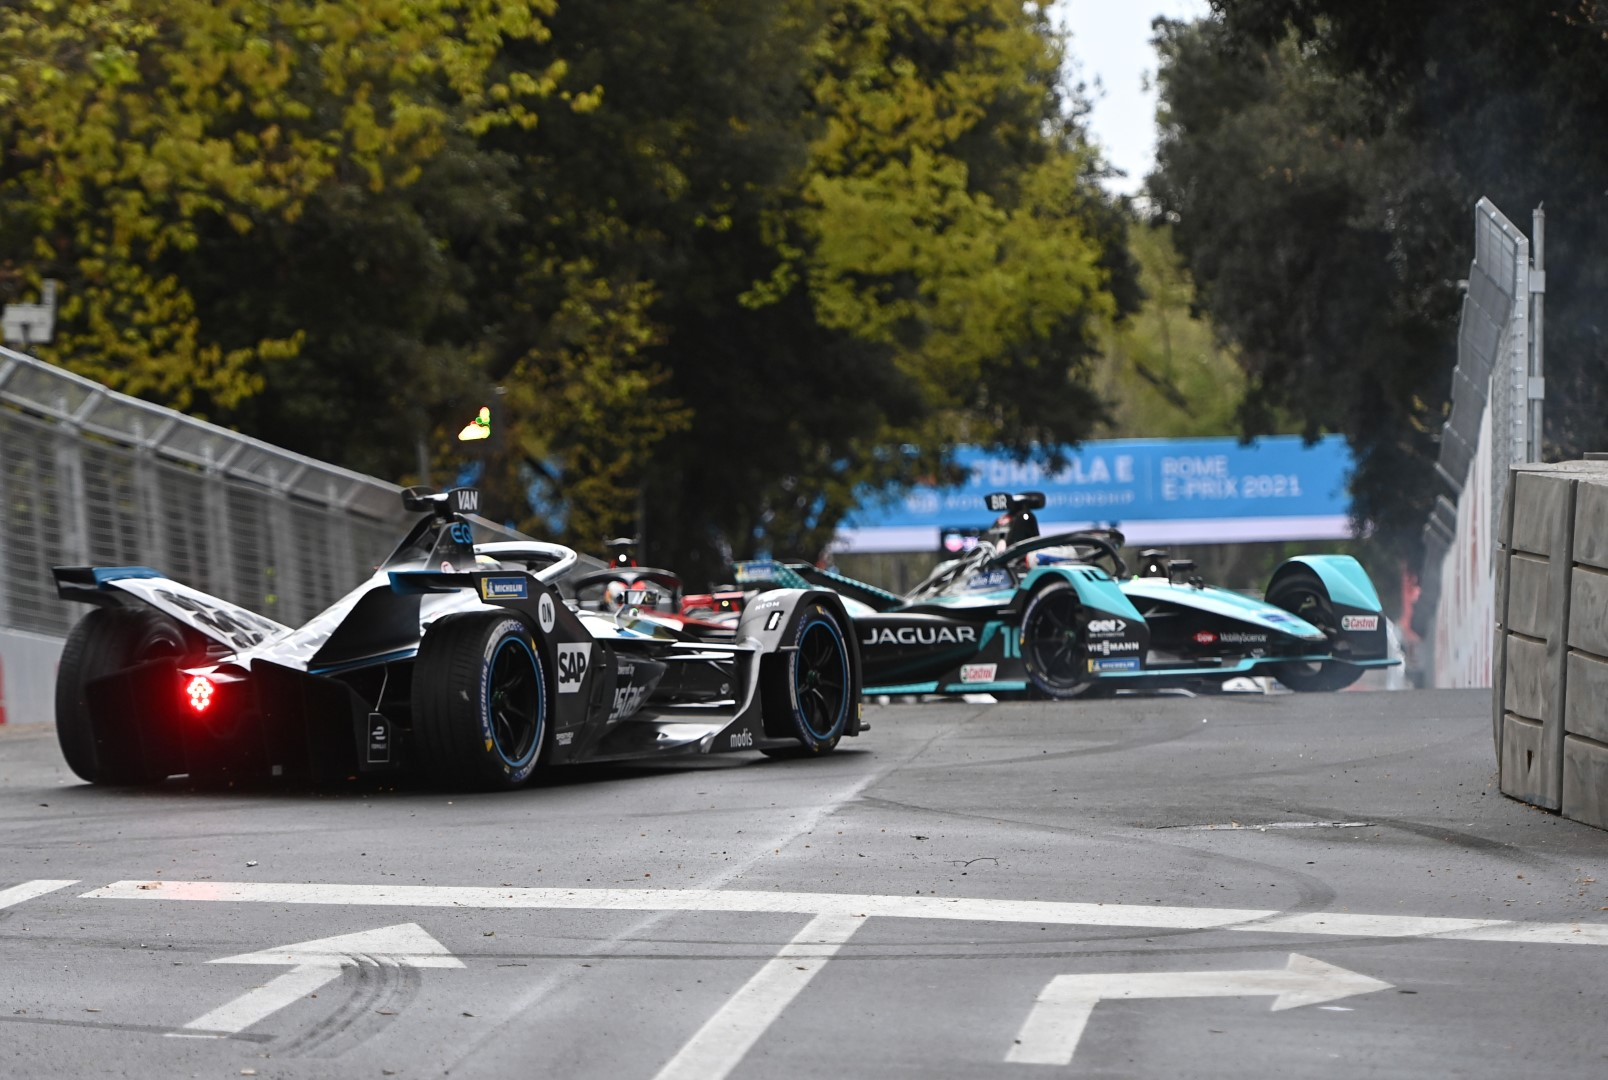 2. Vandoorne and Lotterer crash Rome E-Prix 2021 Formula E